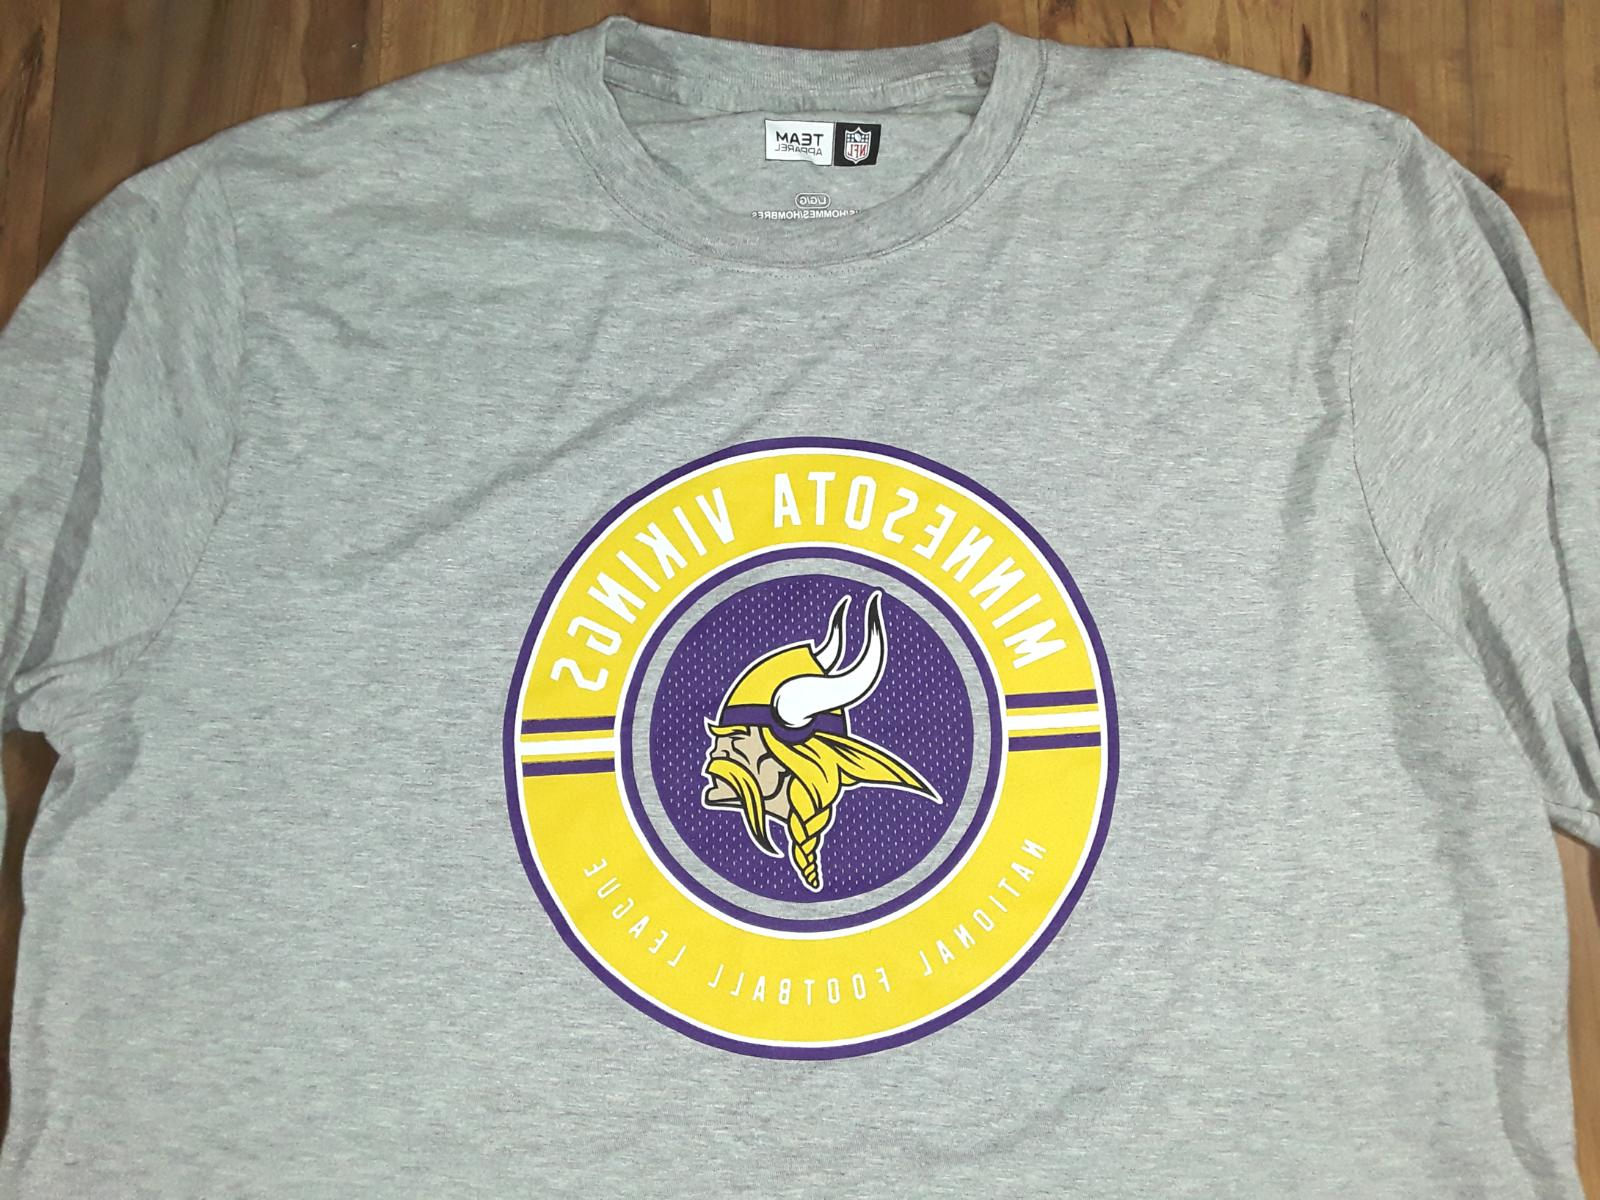 Mens Minnesota Vikings NFL Team T-Shirt Gray